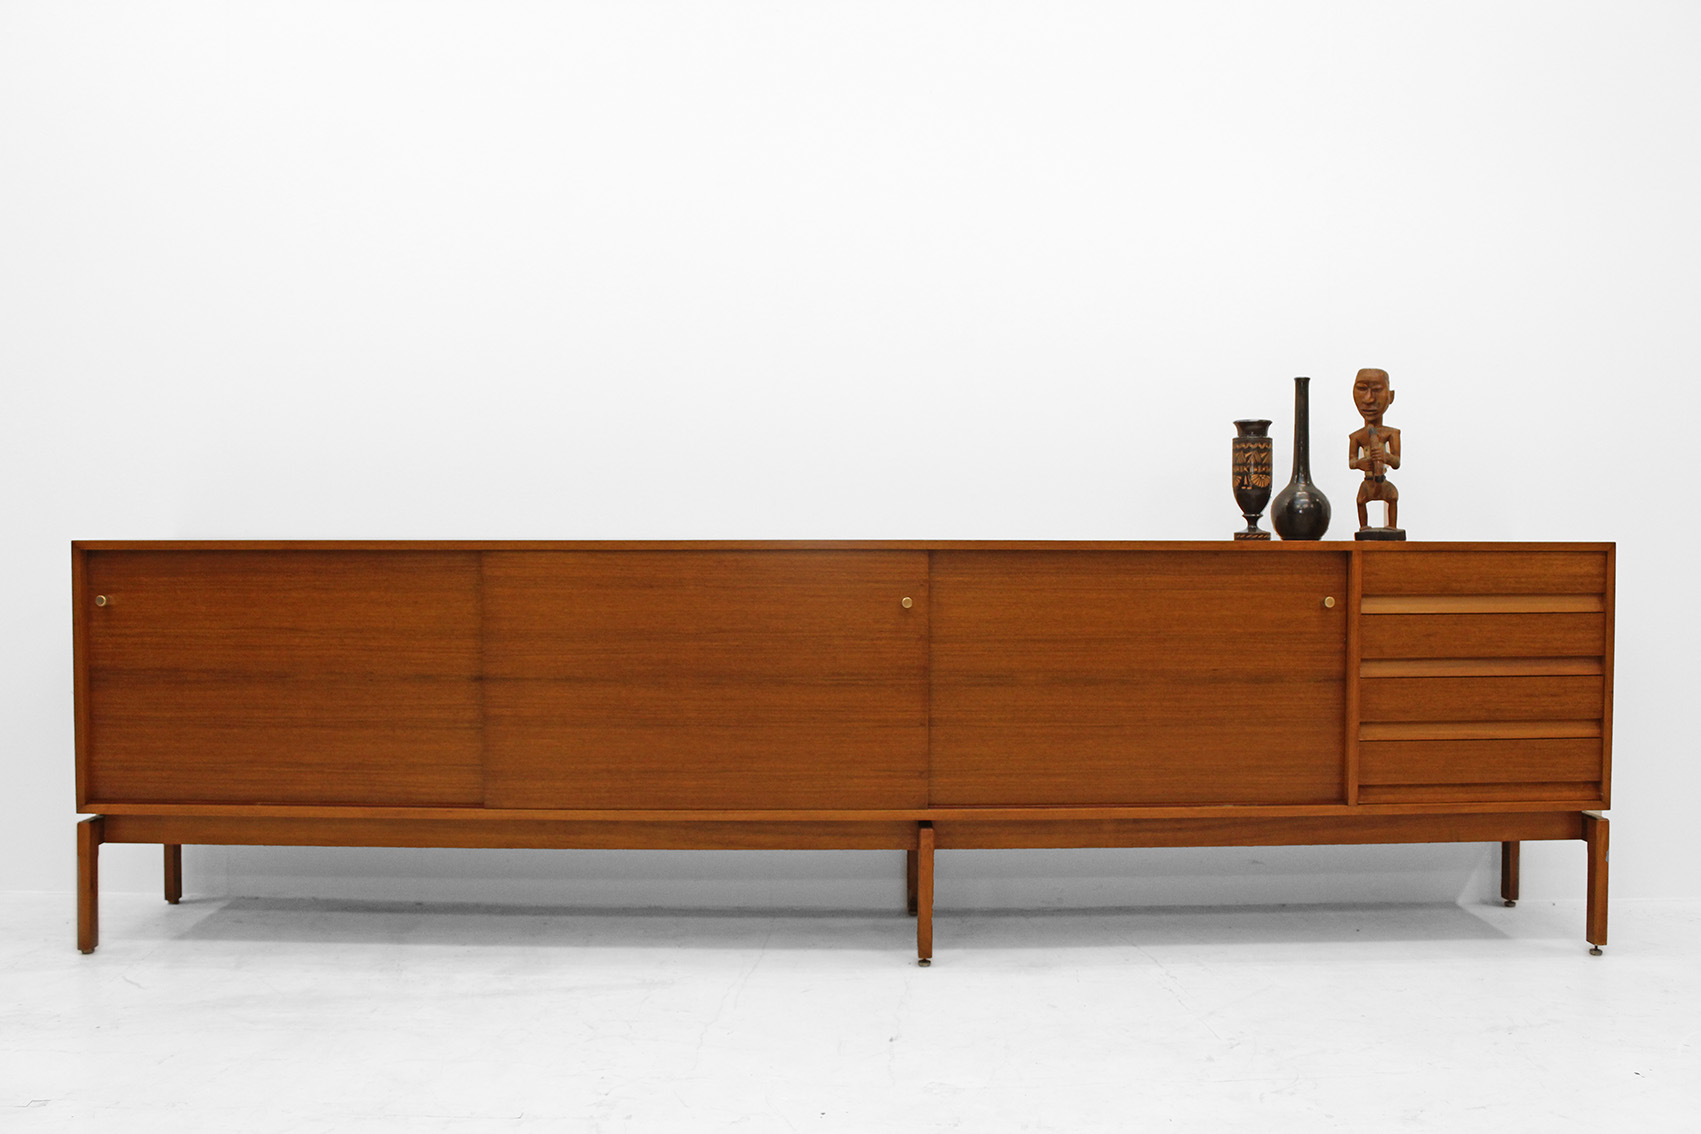 XXL abstracta sideboard designed by Jos De Mey